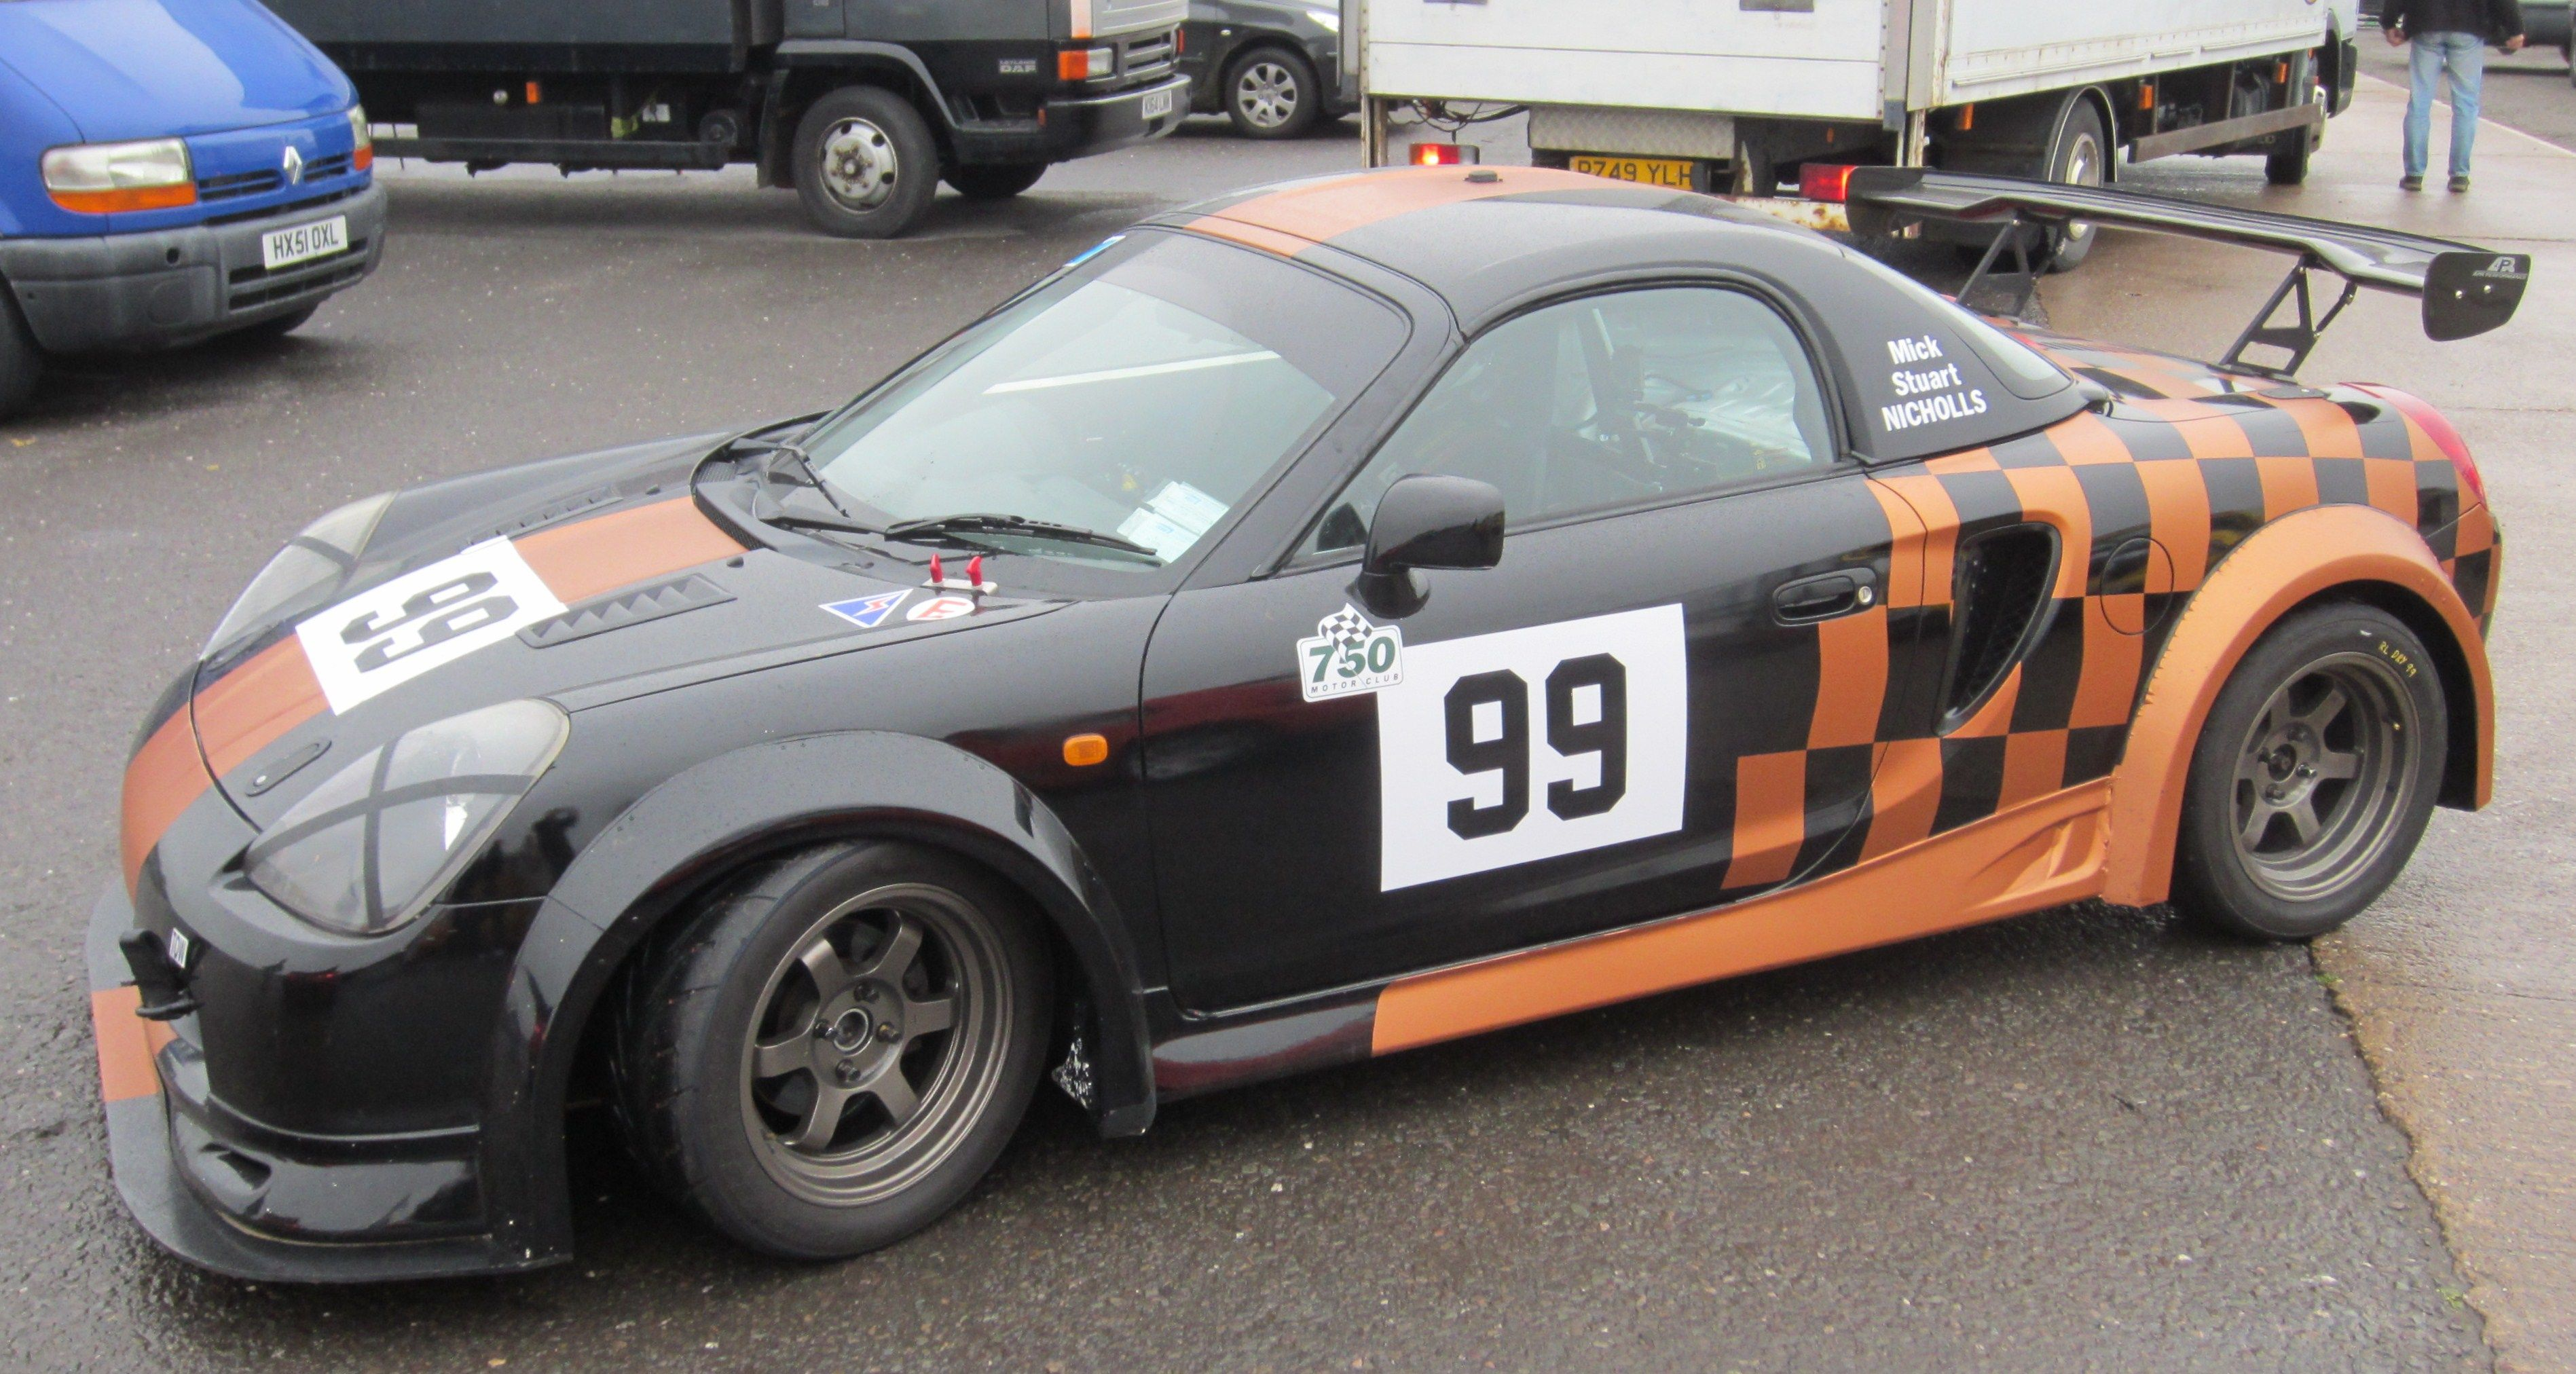 Roadsports Class B - up to 200bhp/ton (Supersport)